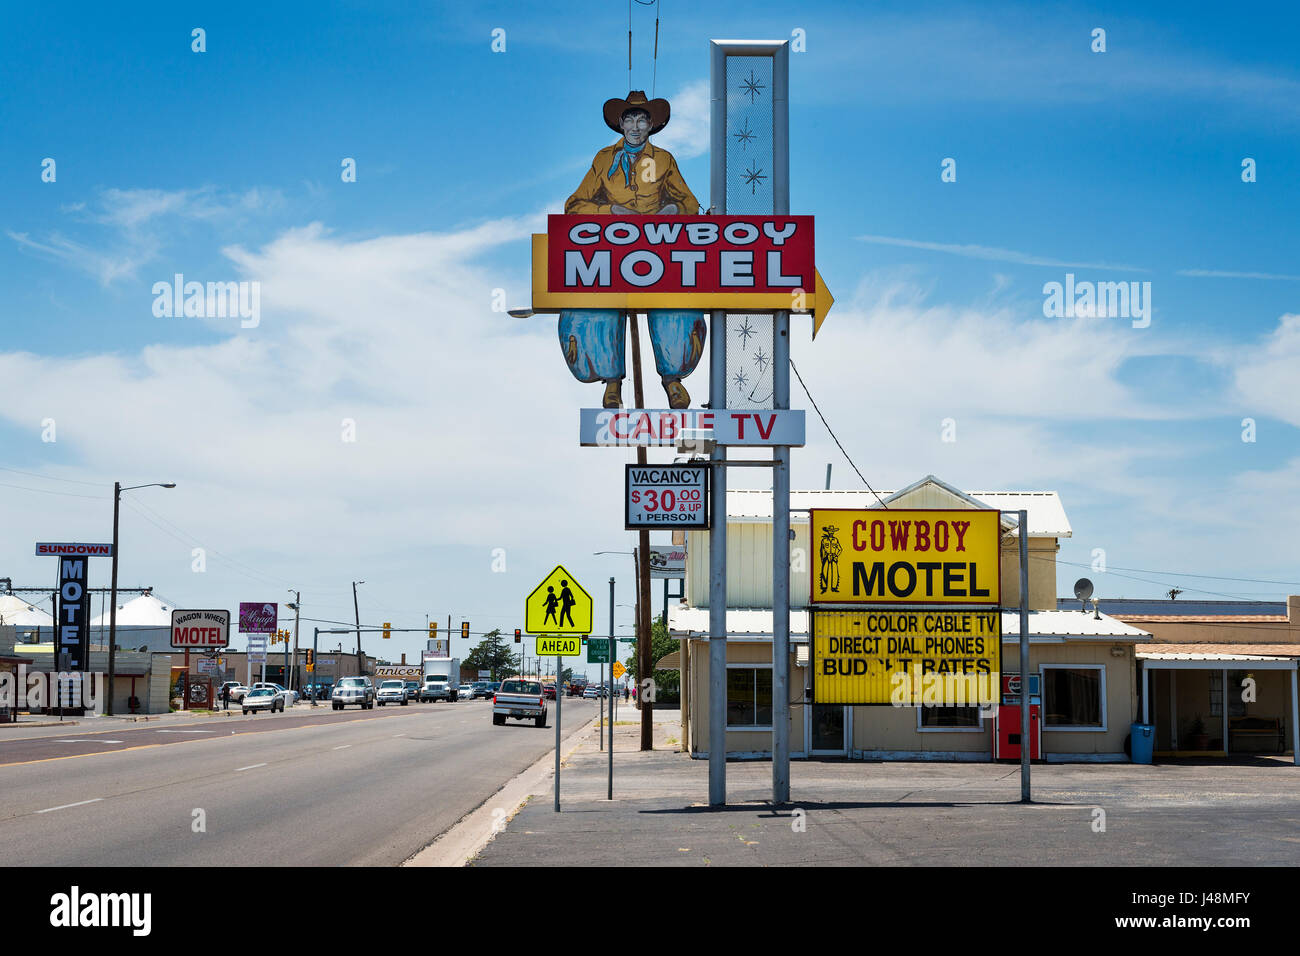 Amarillo, Texas - July 8, 2014: The old Cowboy Motel along the historic Route 66 in the Amarillo, Texas, USA. - Stock Image